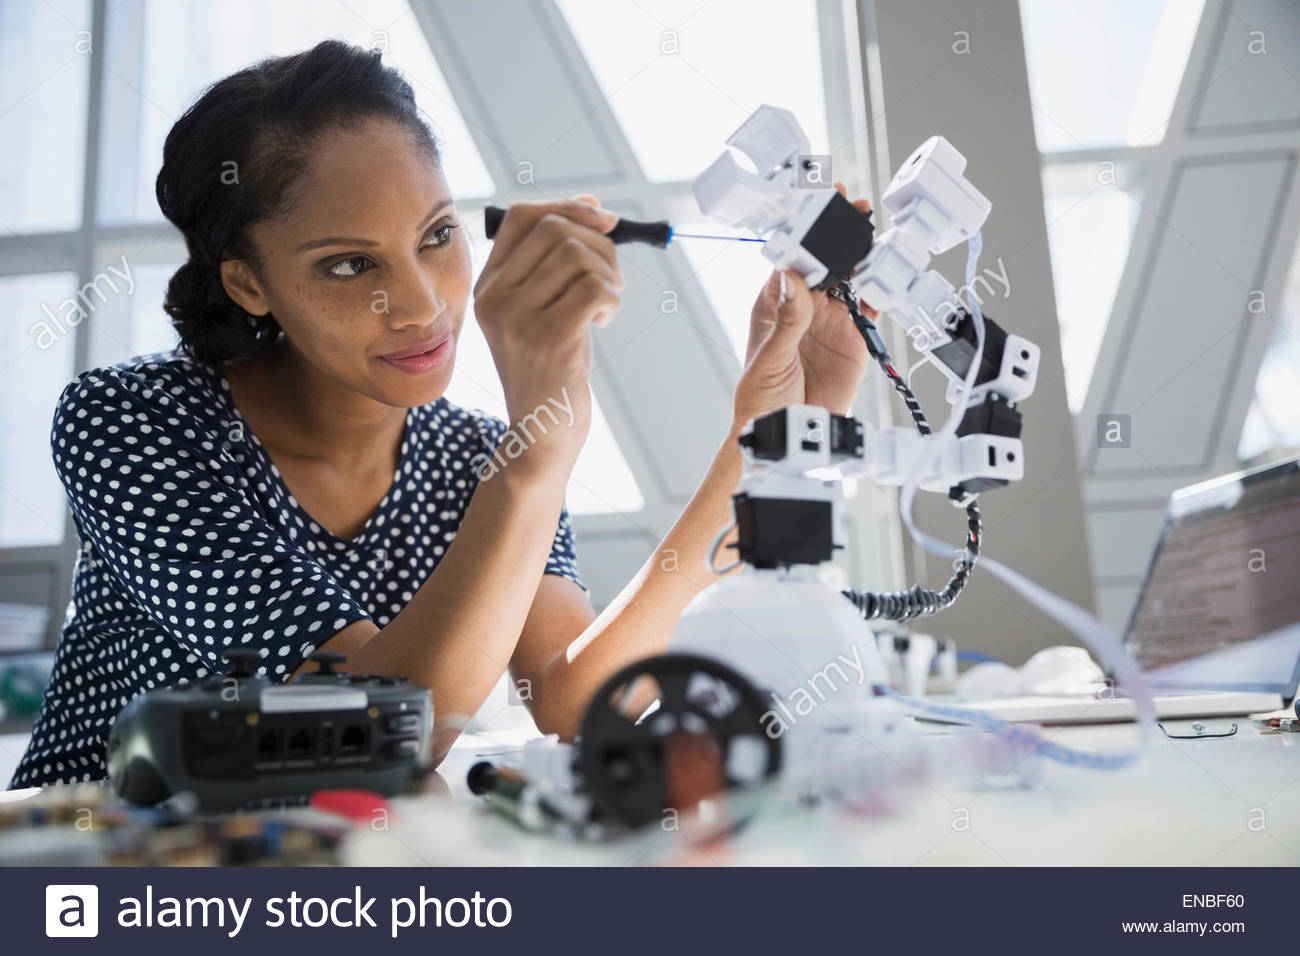 Engineer assembling robotic arm at desk - Stock Image